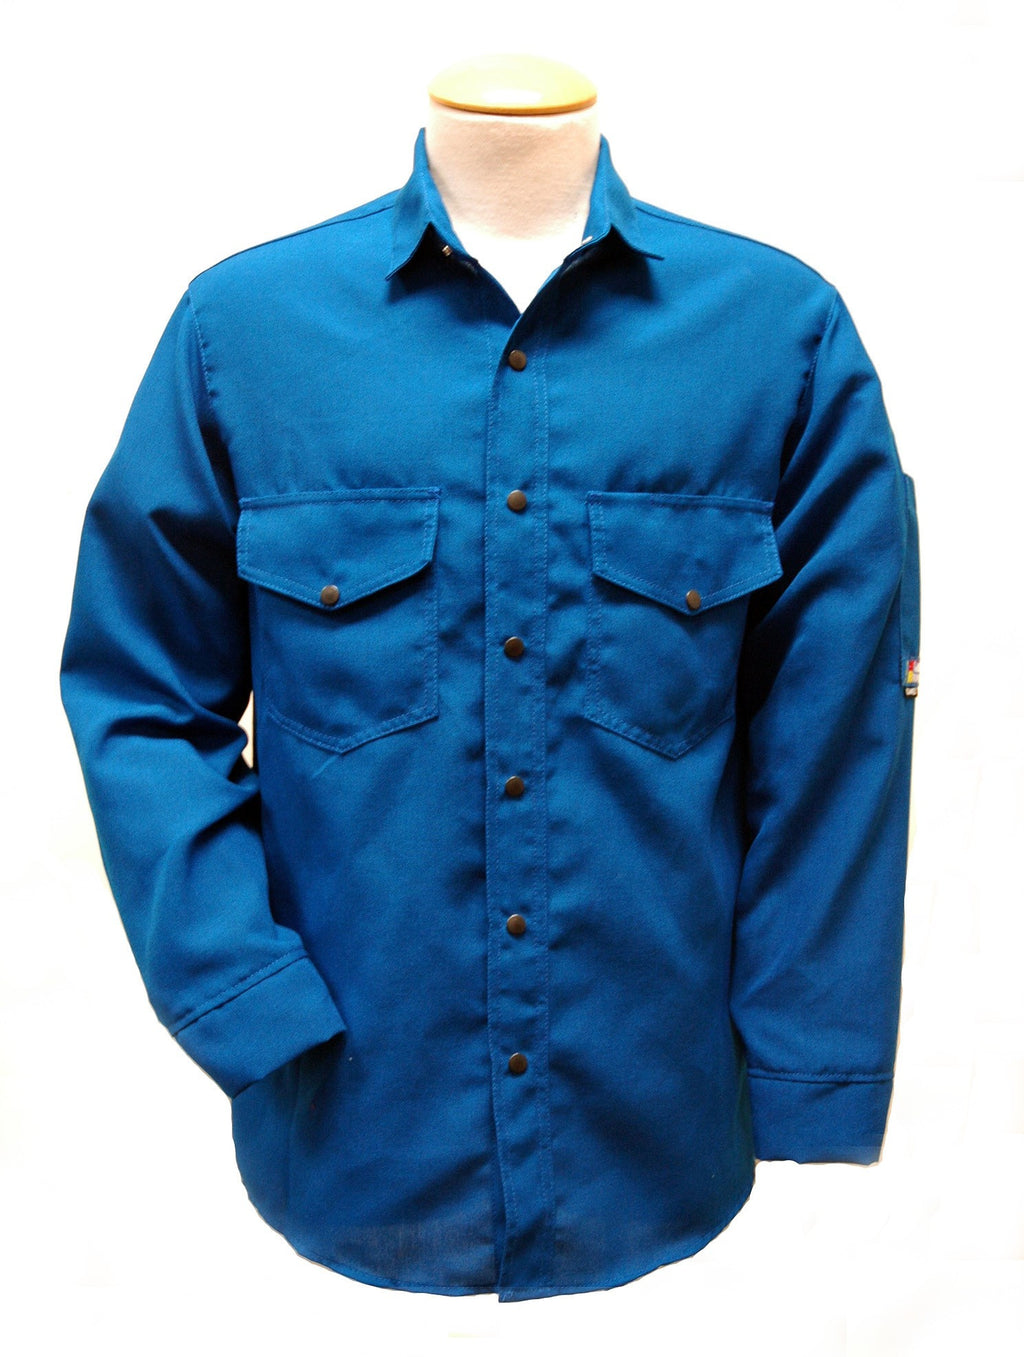 Copy of Shirt, Deluxe, Nomex 4.5 oz Snap Front